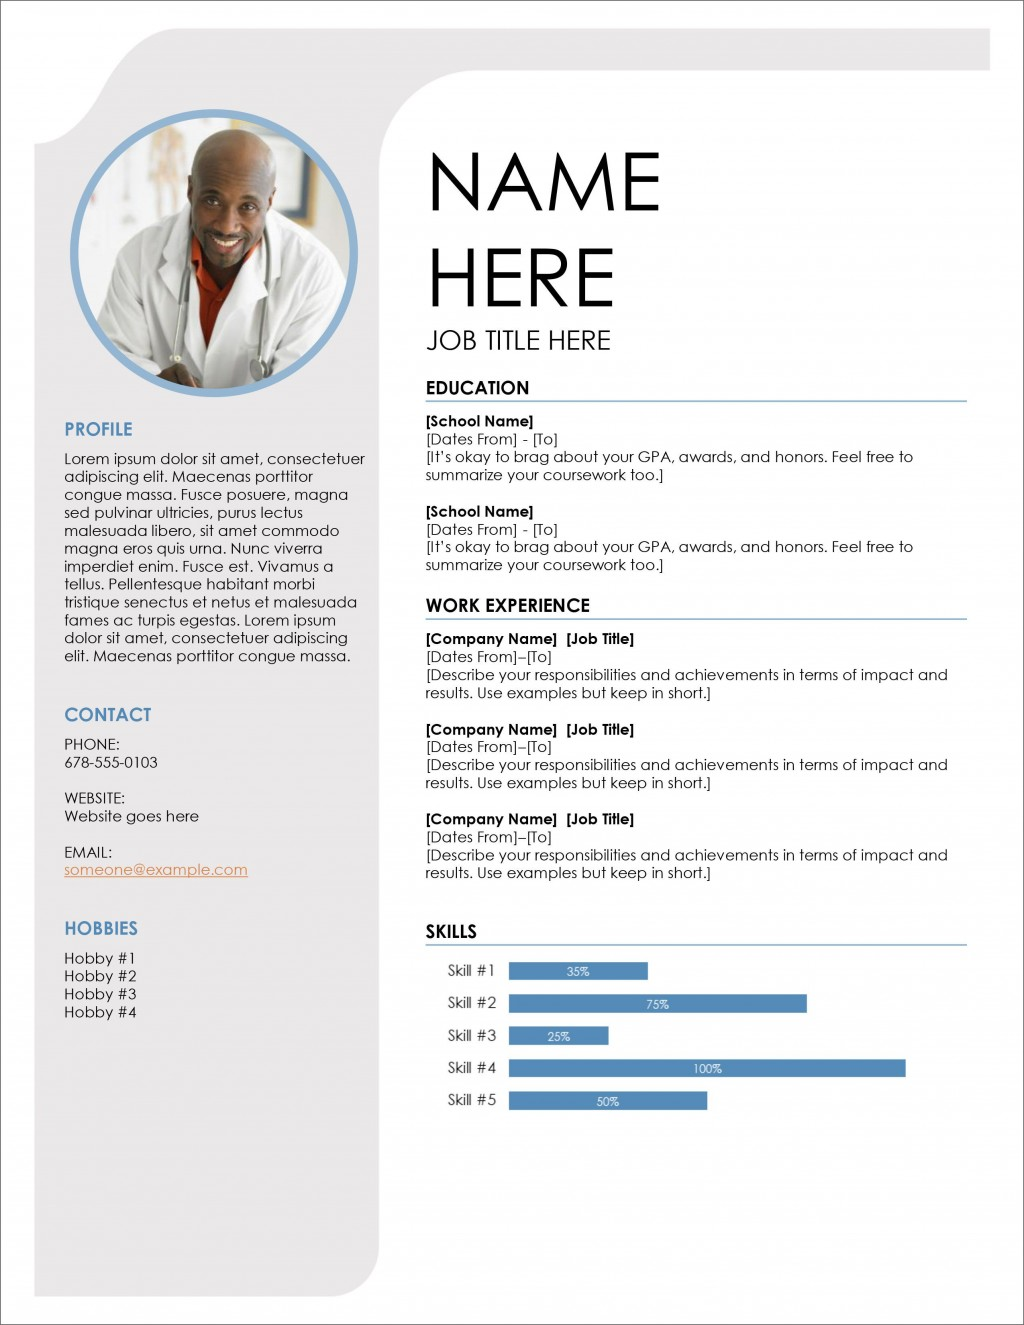 005 Marvelou Cv Template Free Download Word Doc Design  Editable Document For Fresher Student EngineerLarge